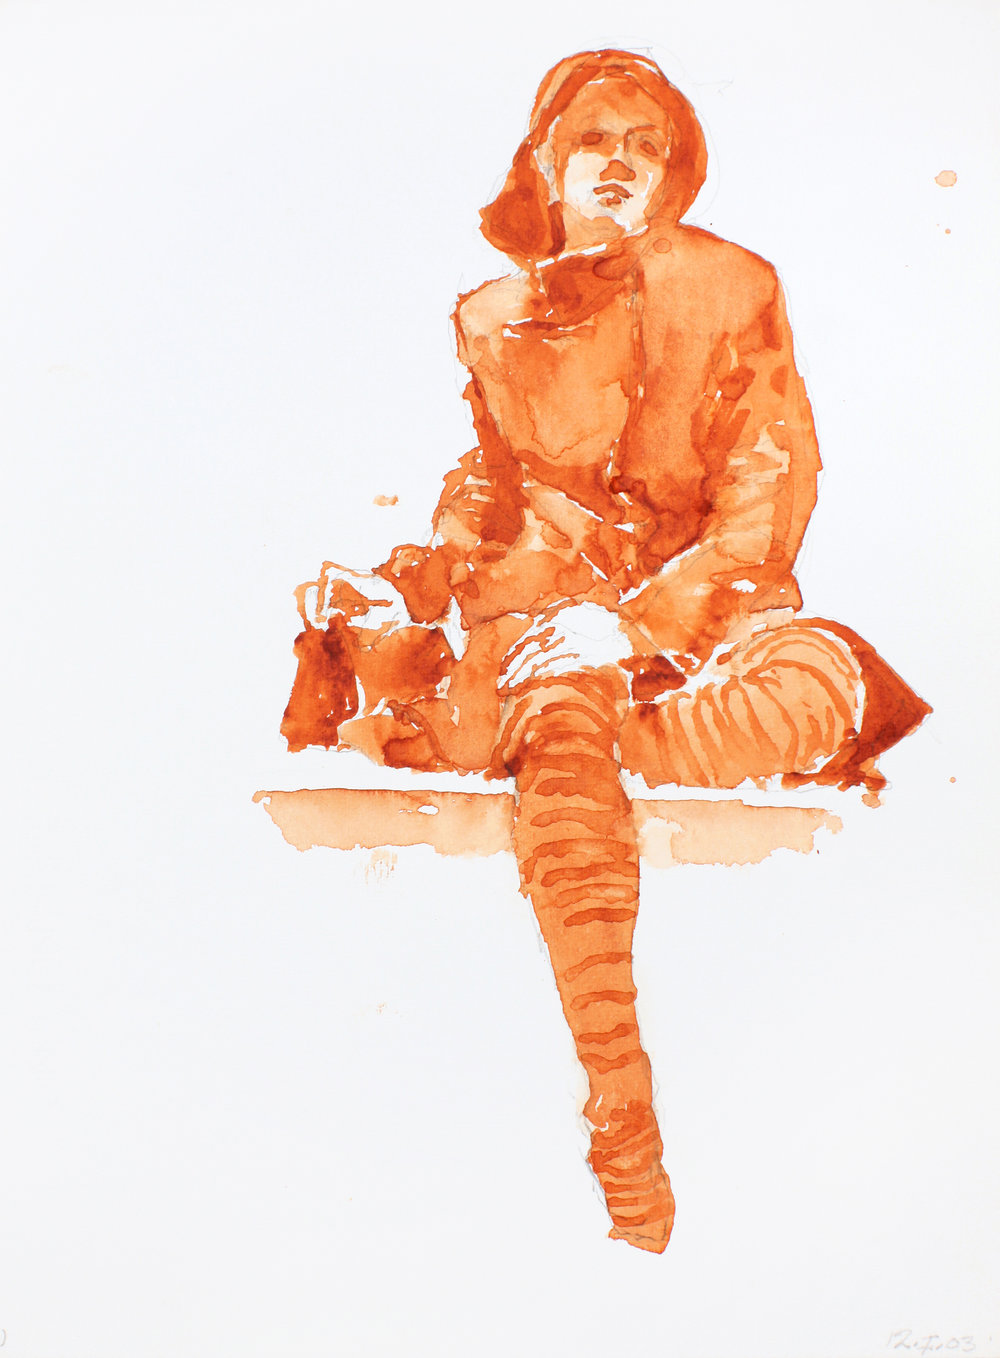 2003_Figure_with_Coat_and_Tights_watercolour_on_paper_15x11in_WPF032.jpg